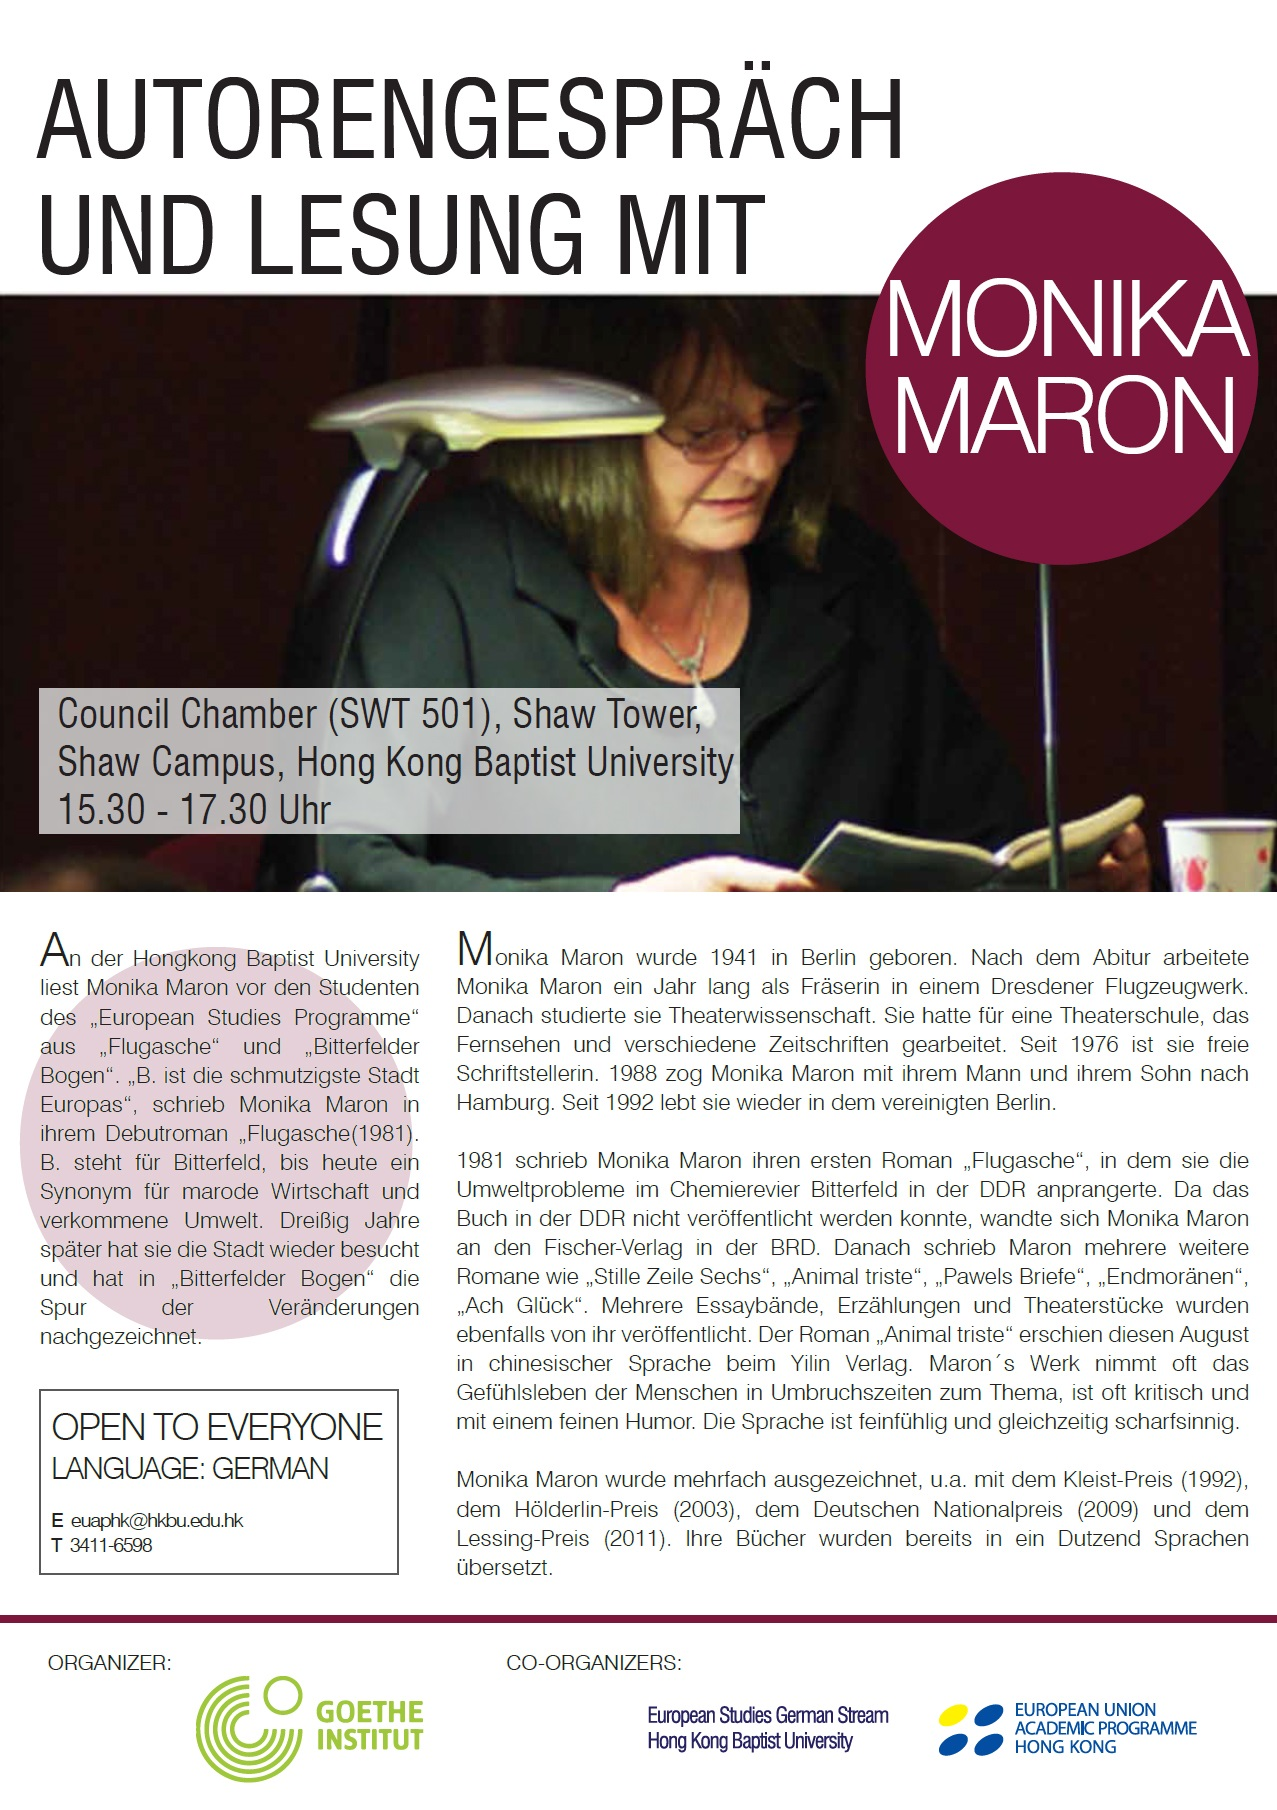 Talk and Public Reading with Monika Maron